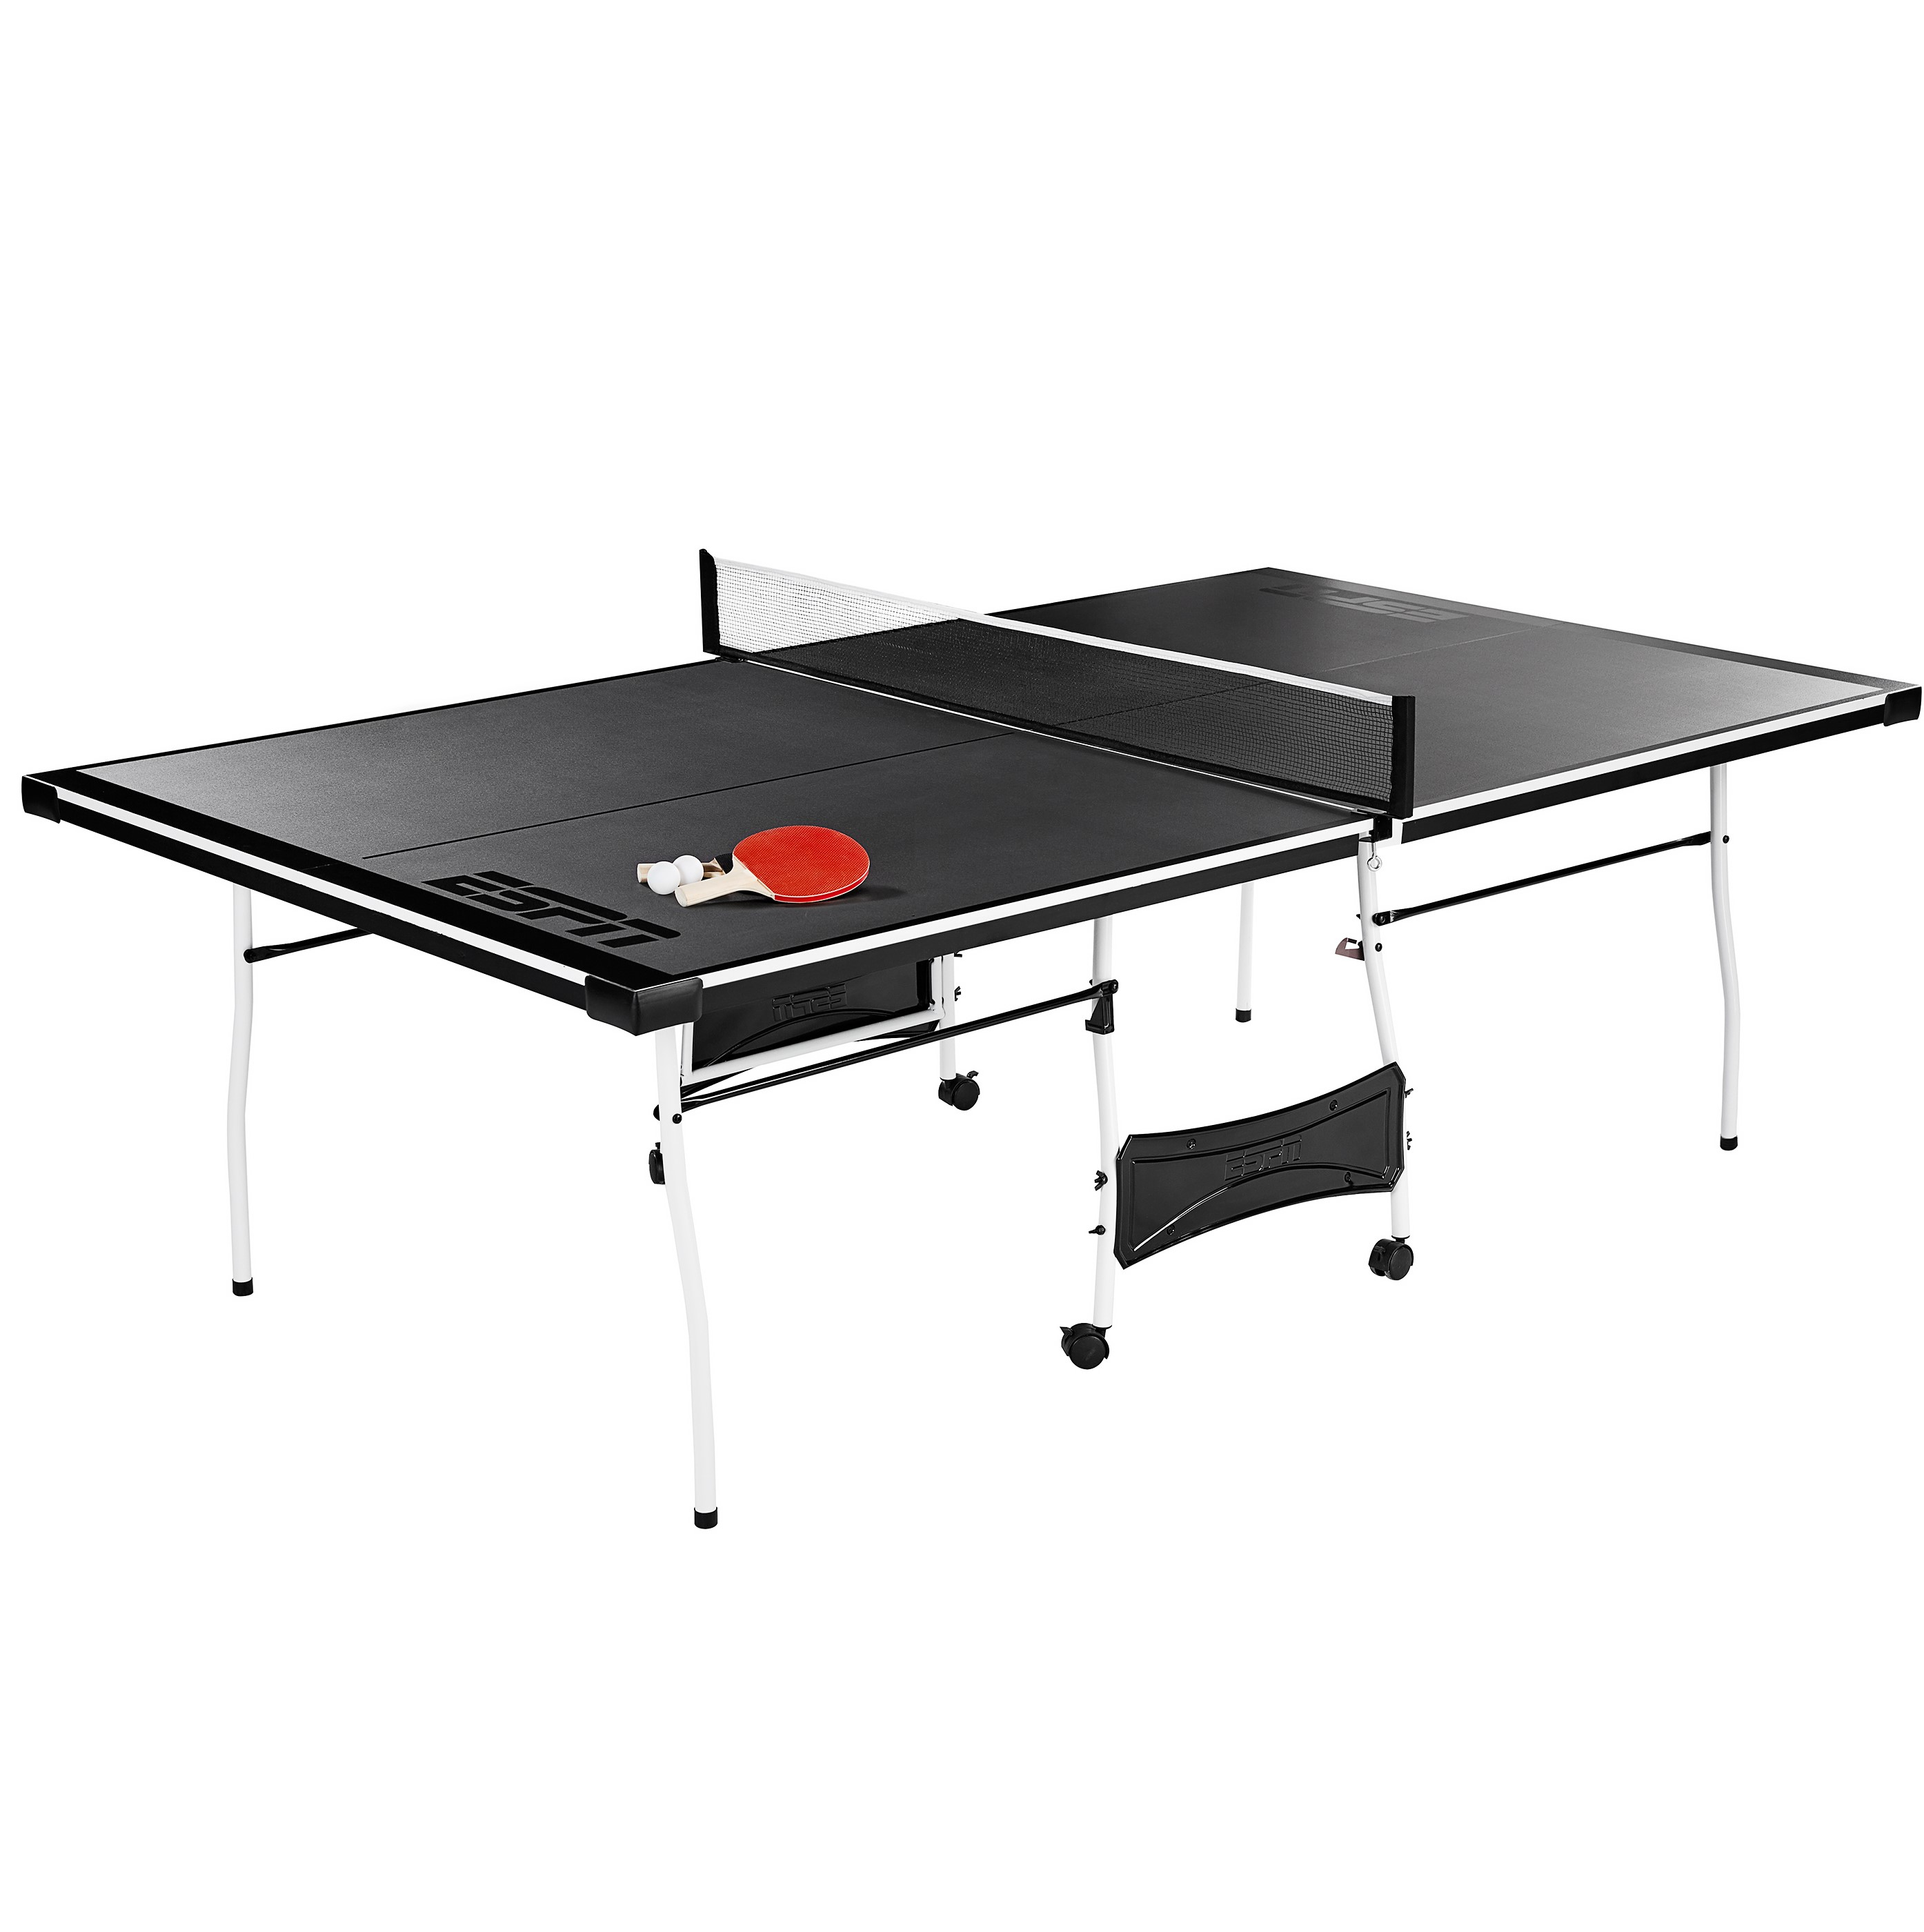 Espn Mid Size Folding Table Tennis Ping Pong Table Game